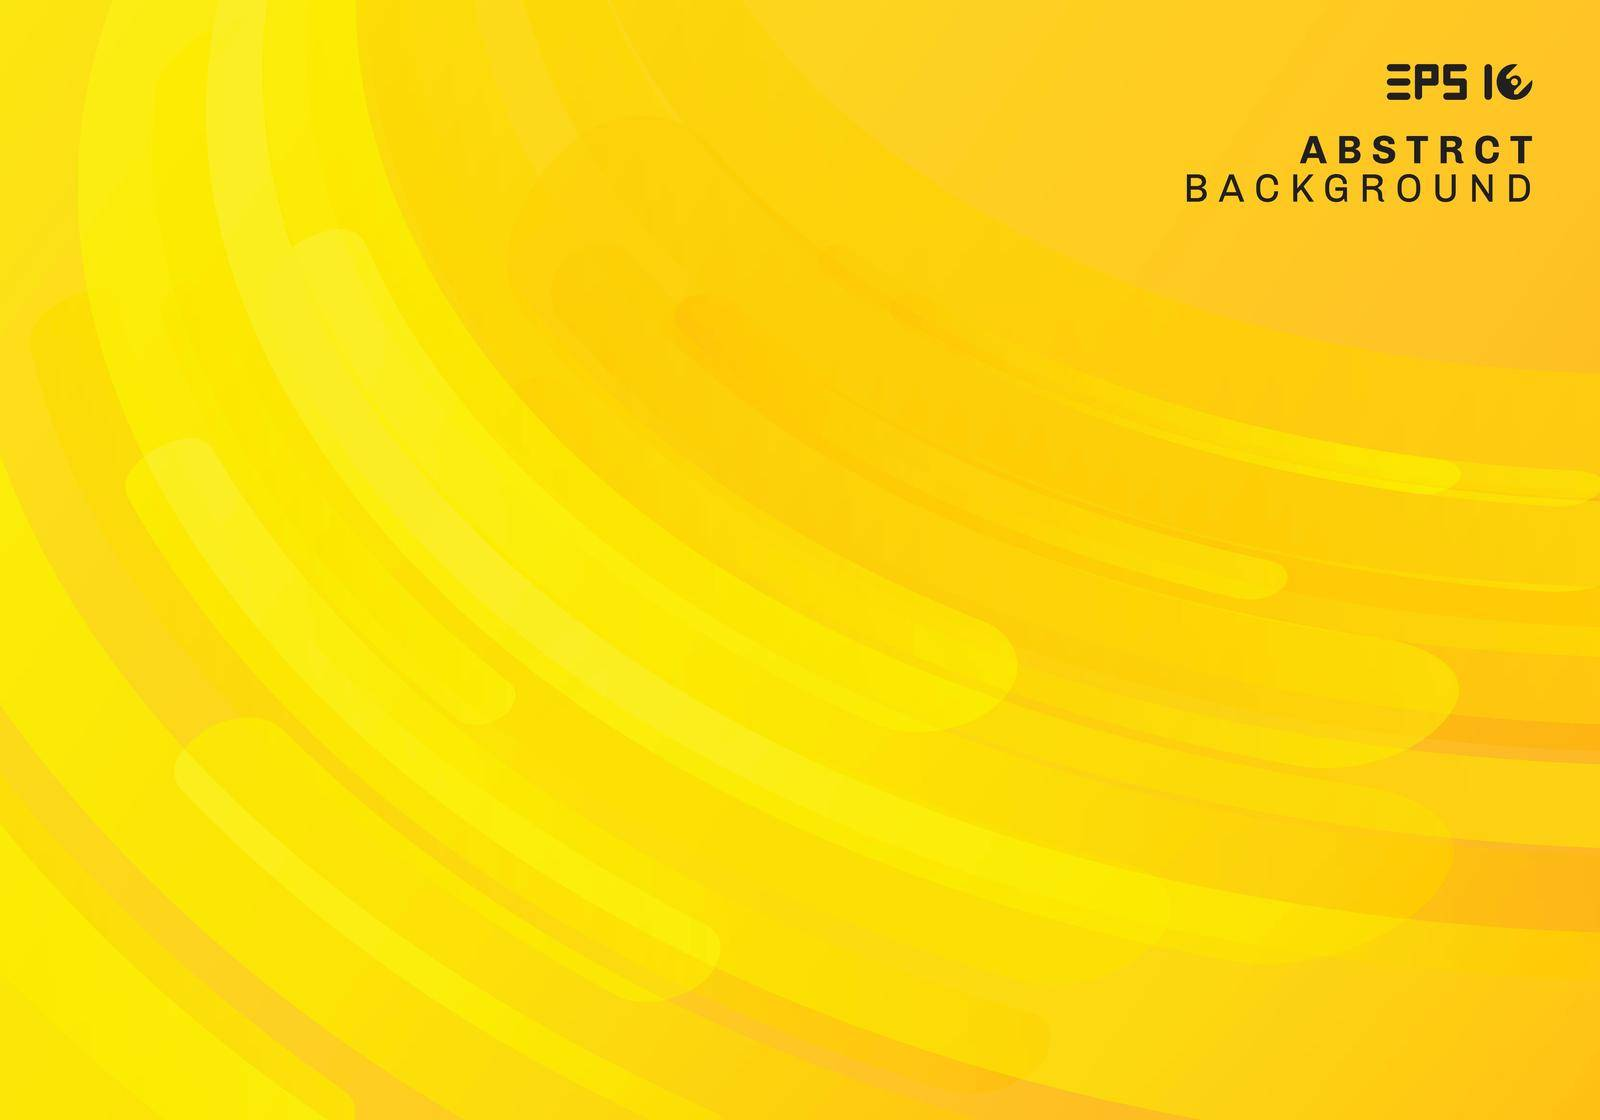 Abstract yellow geometric background and dynamic curve fluid motion shapes composition. Vector illustration